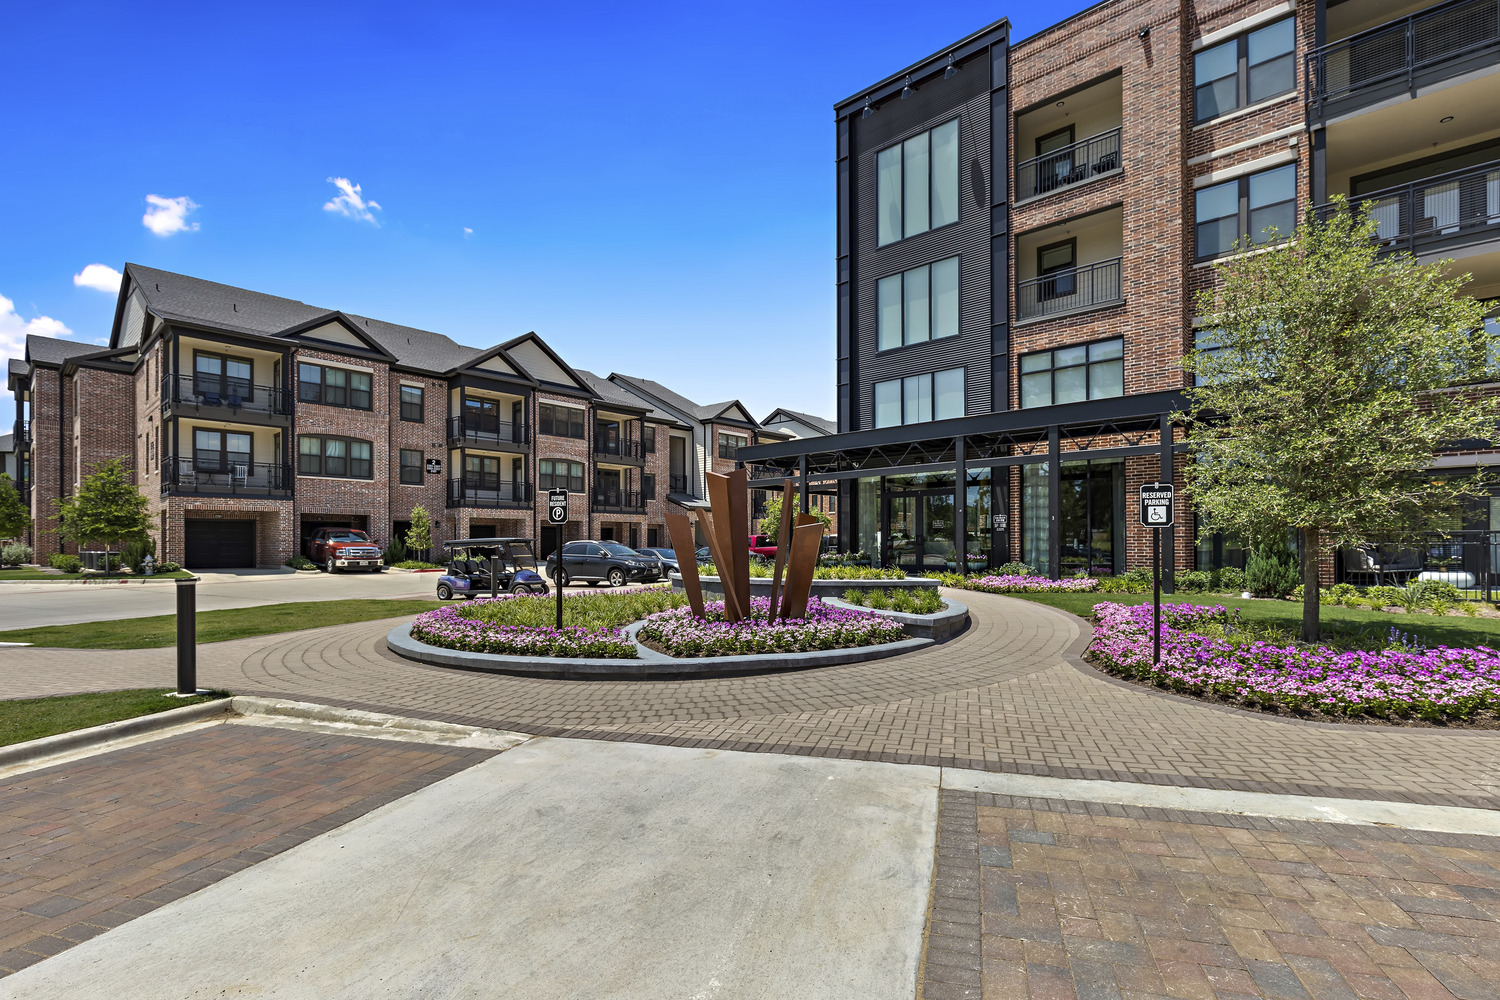 CBG builds Trinity Union, a Nine-Building Apartment Community with Amenities and Precast Parking in Euless, TX - Image #9